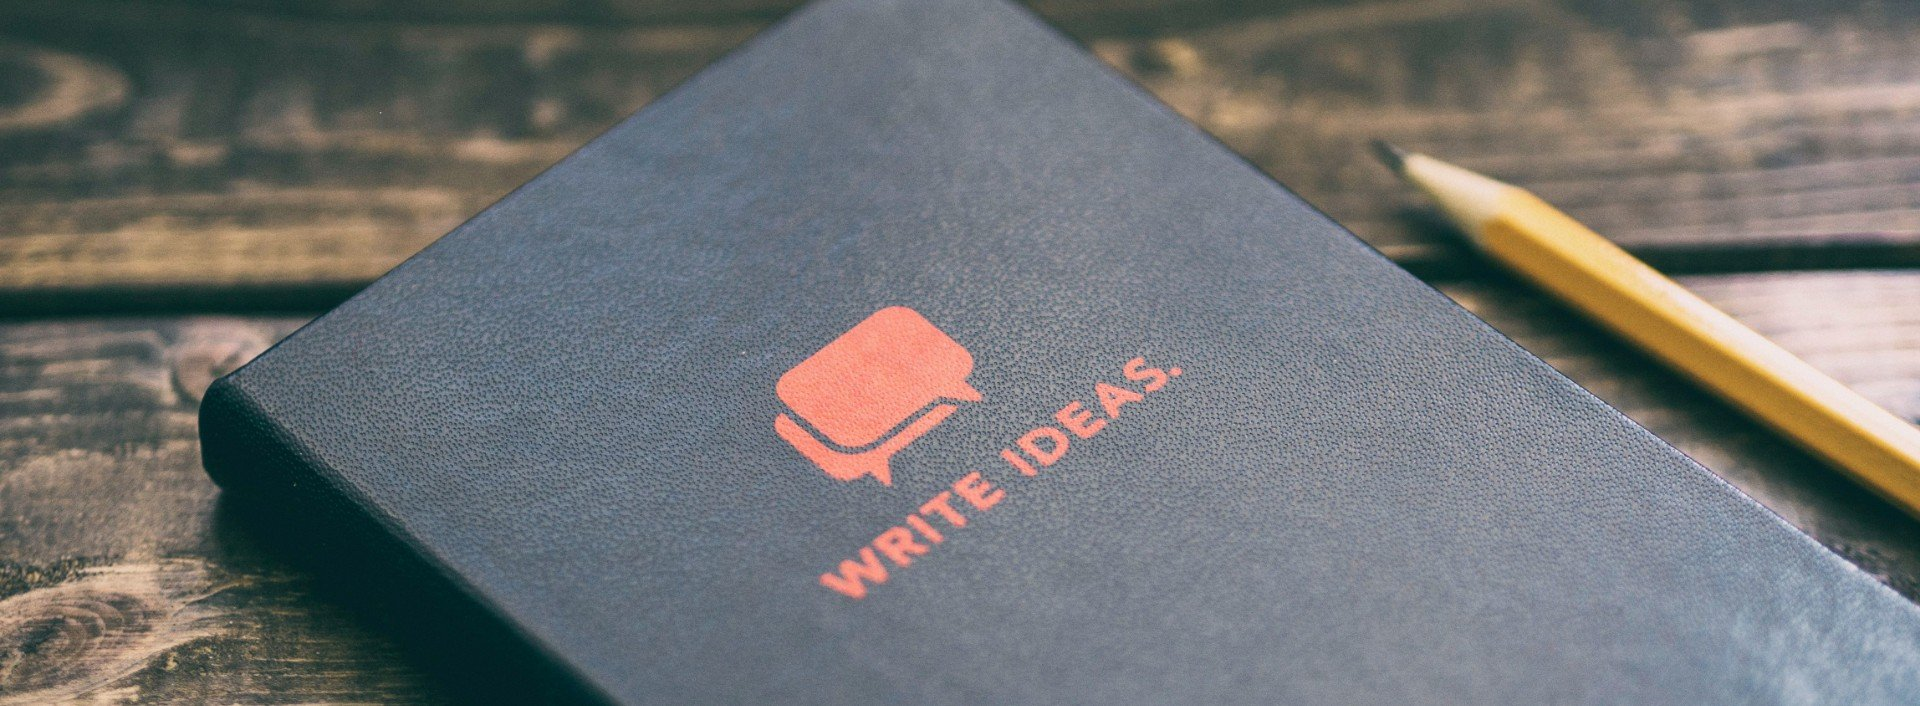 "A cover of a black book with the words ""write ideas"" underneath two speech bubbles to exchange ideas in English."